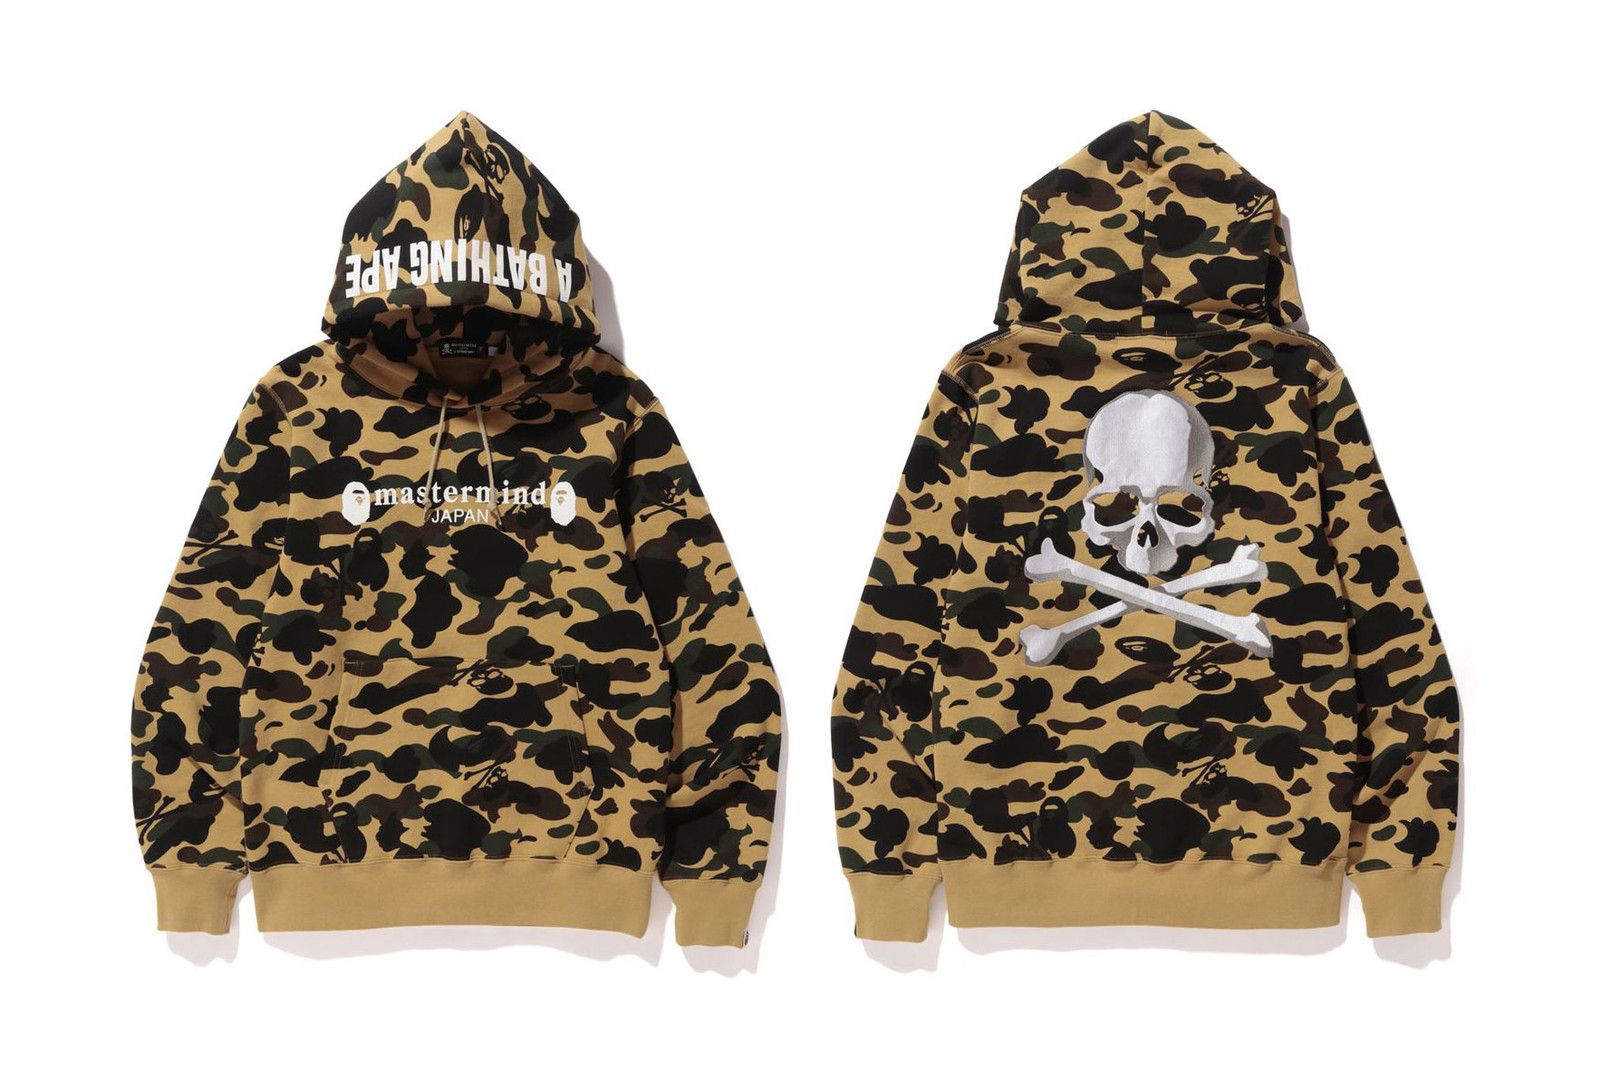 bape-x-mastermind-japan-2016-fall-winter-collaboration-00000